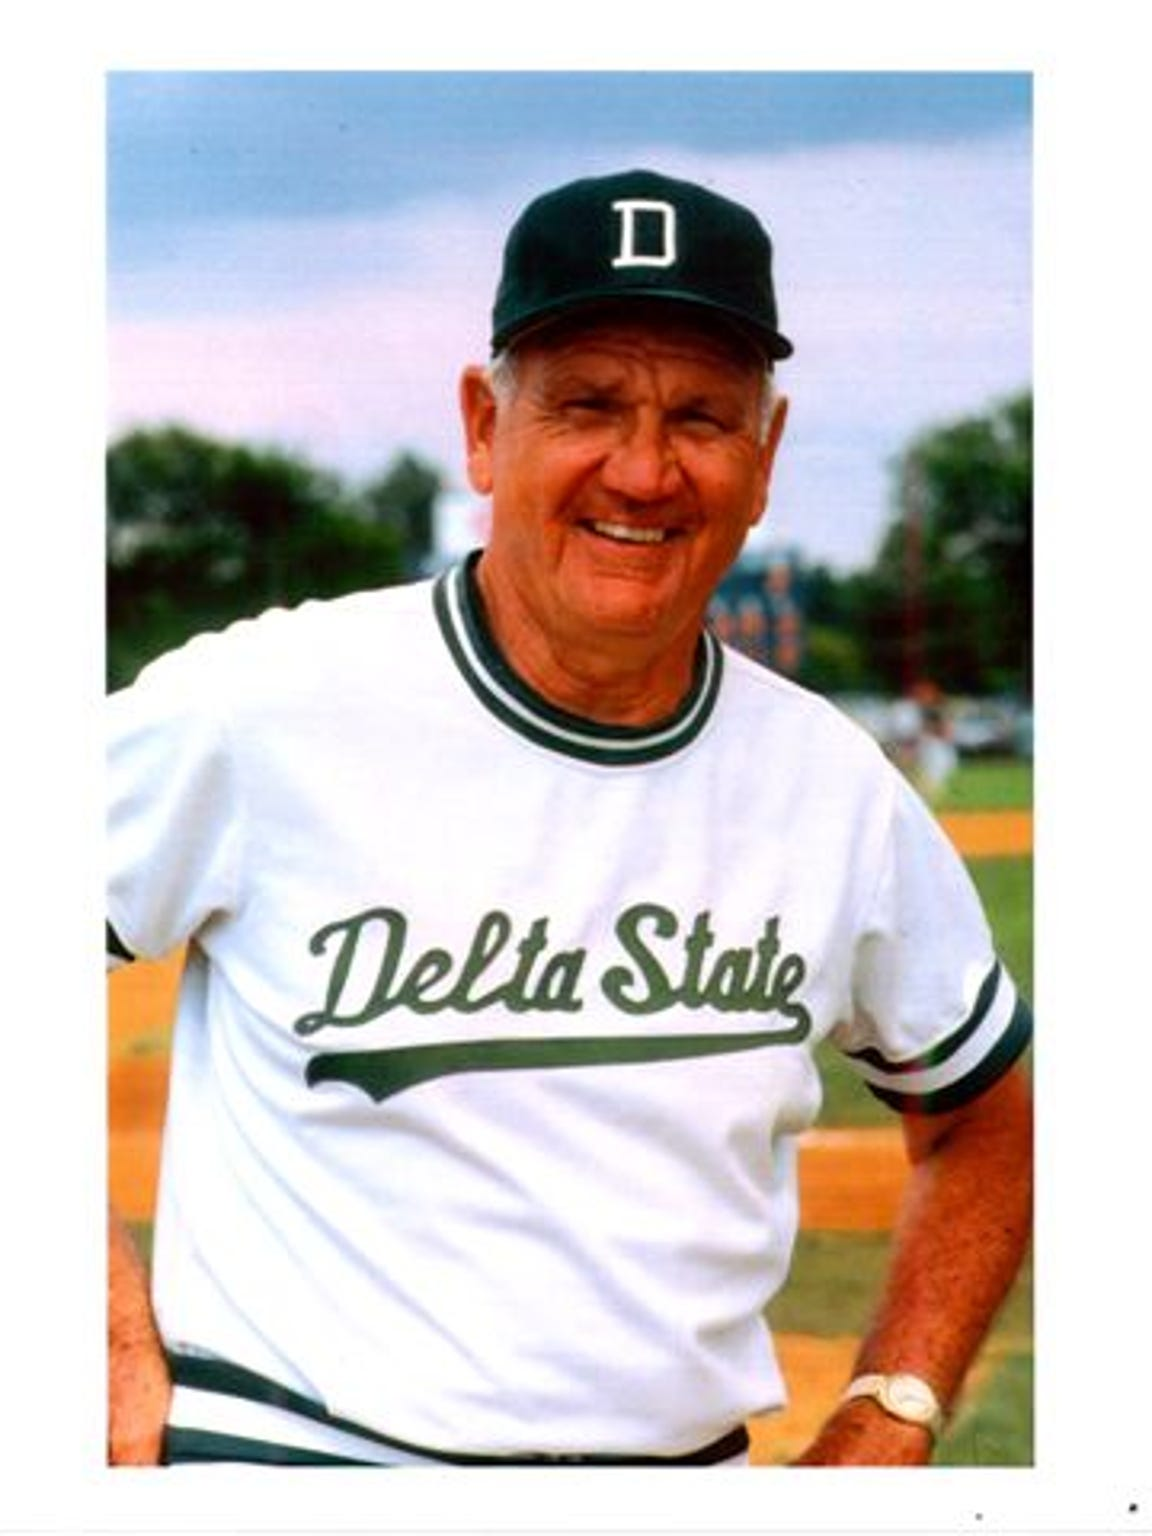 Boo Ferris during his Delta State coaching days.